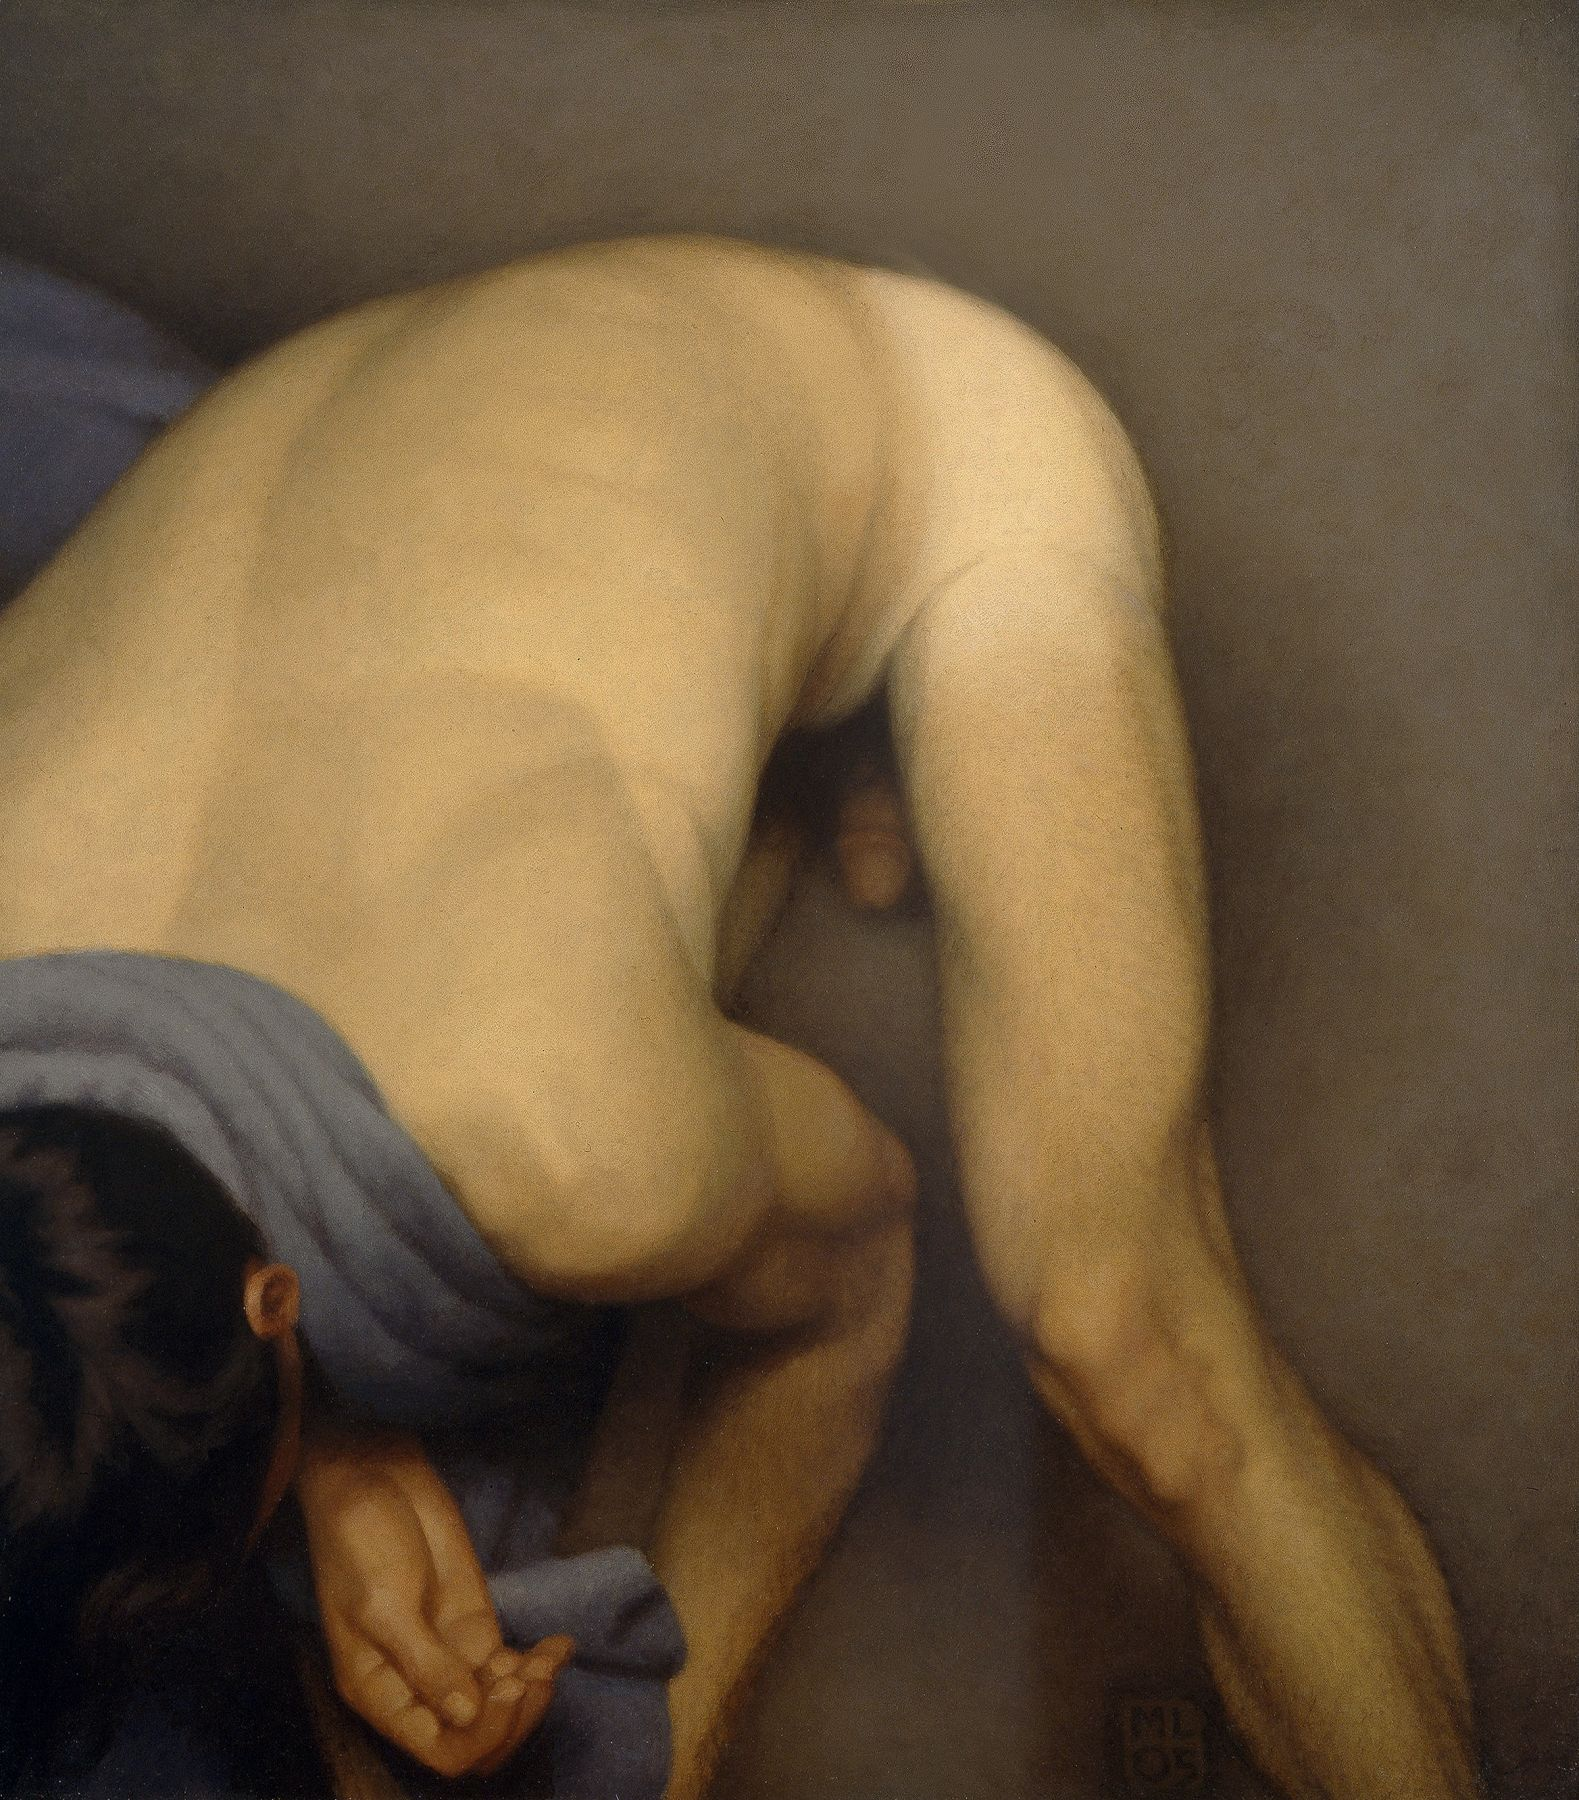 Michael Leonard, Bather Stooping Low, 2005, alkyd-oil on masonite, 23 x 21 1/2 inches